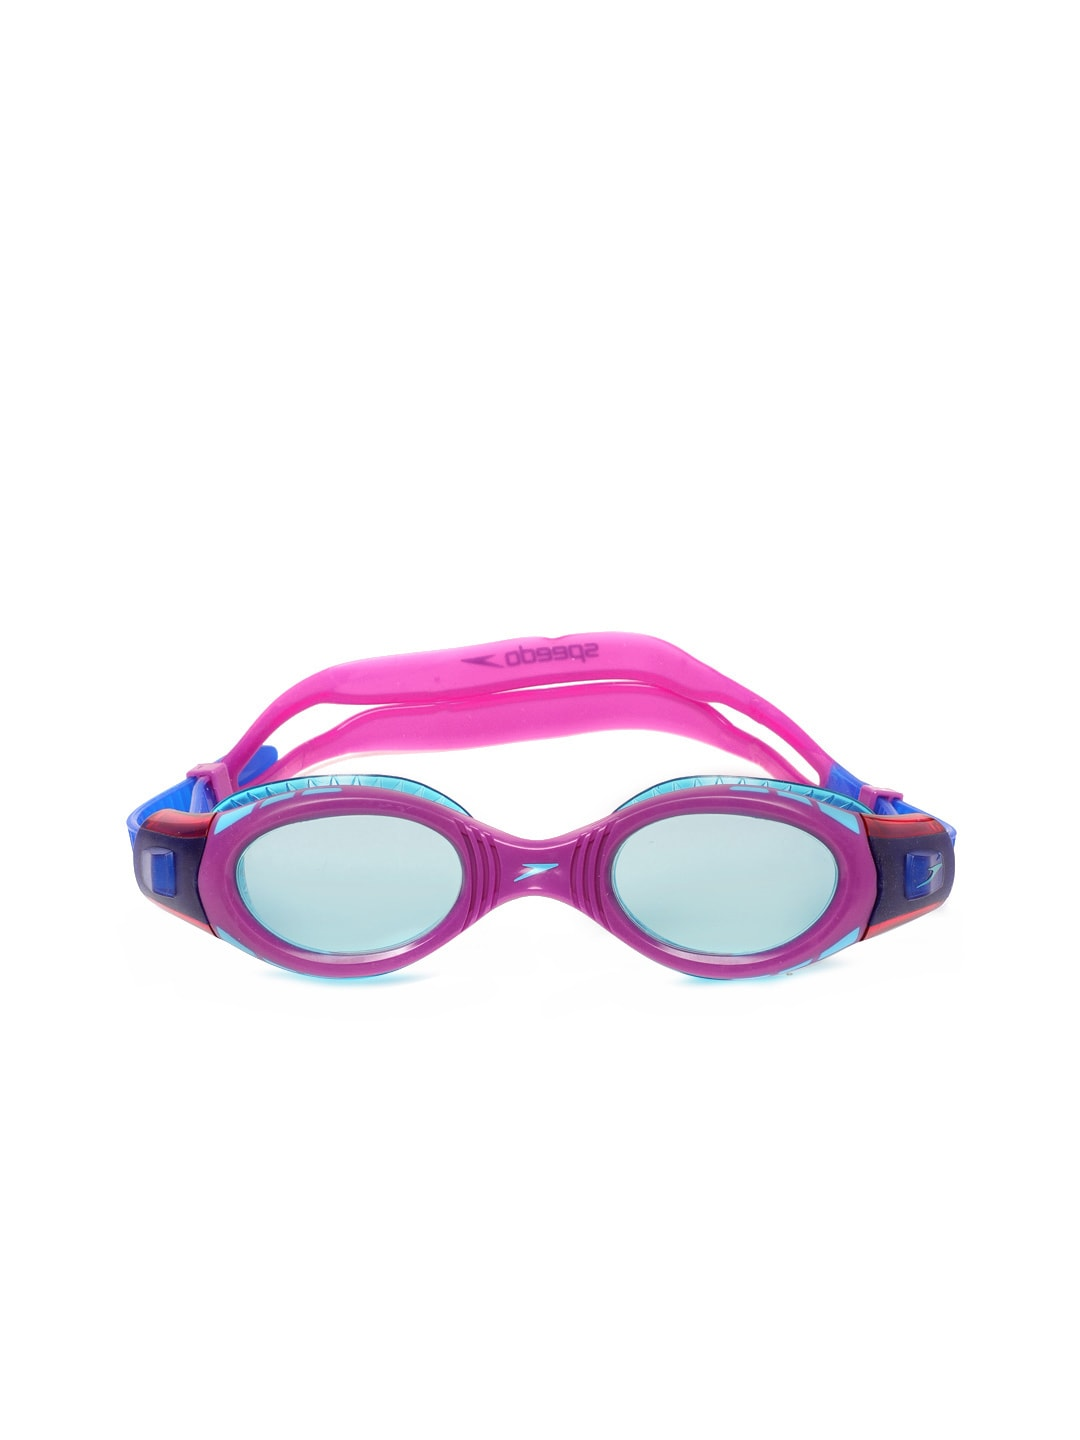 a42a0431415c Speedo Goggles - Buy Speedo Goggles online in India